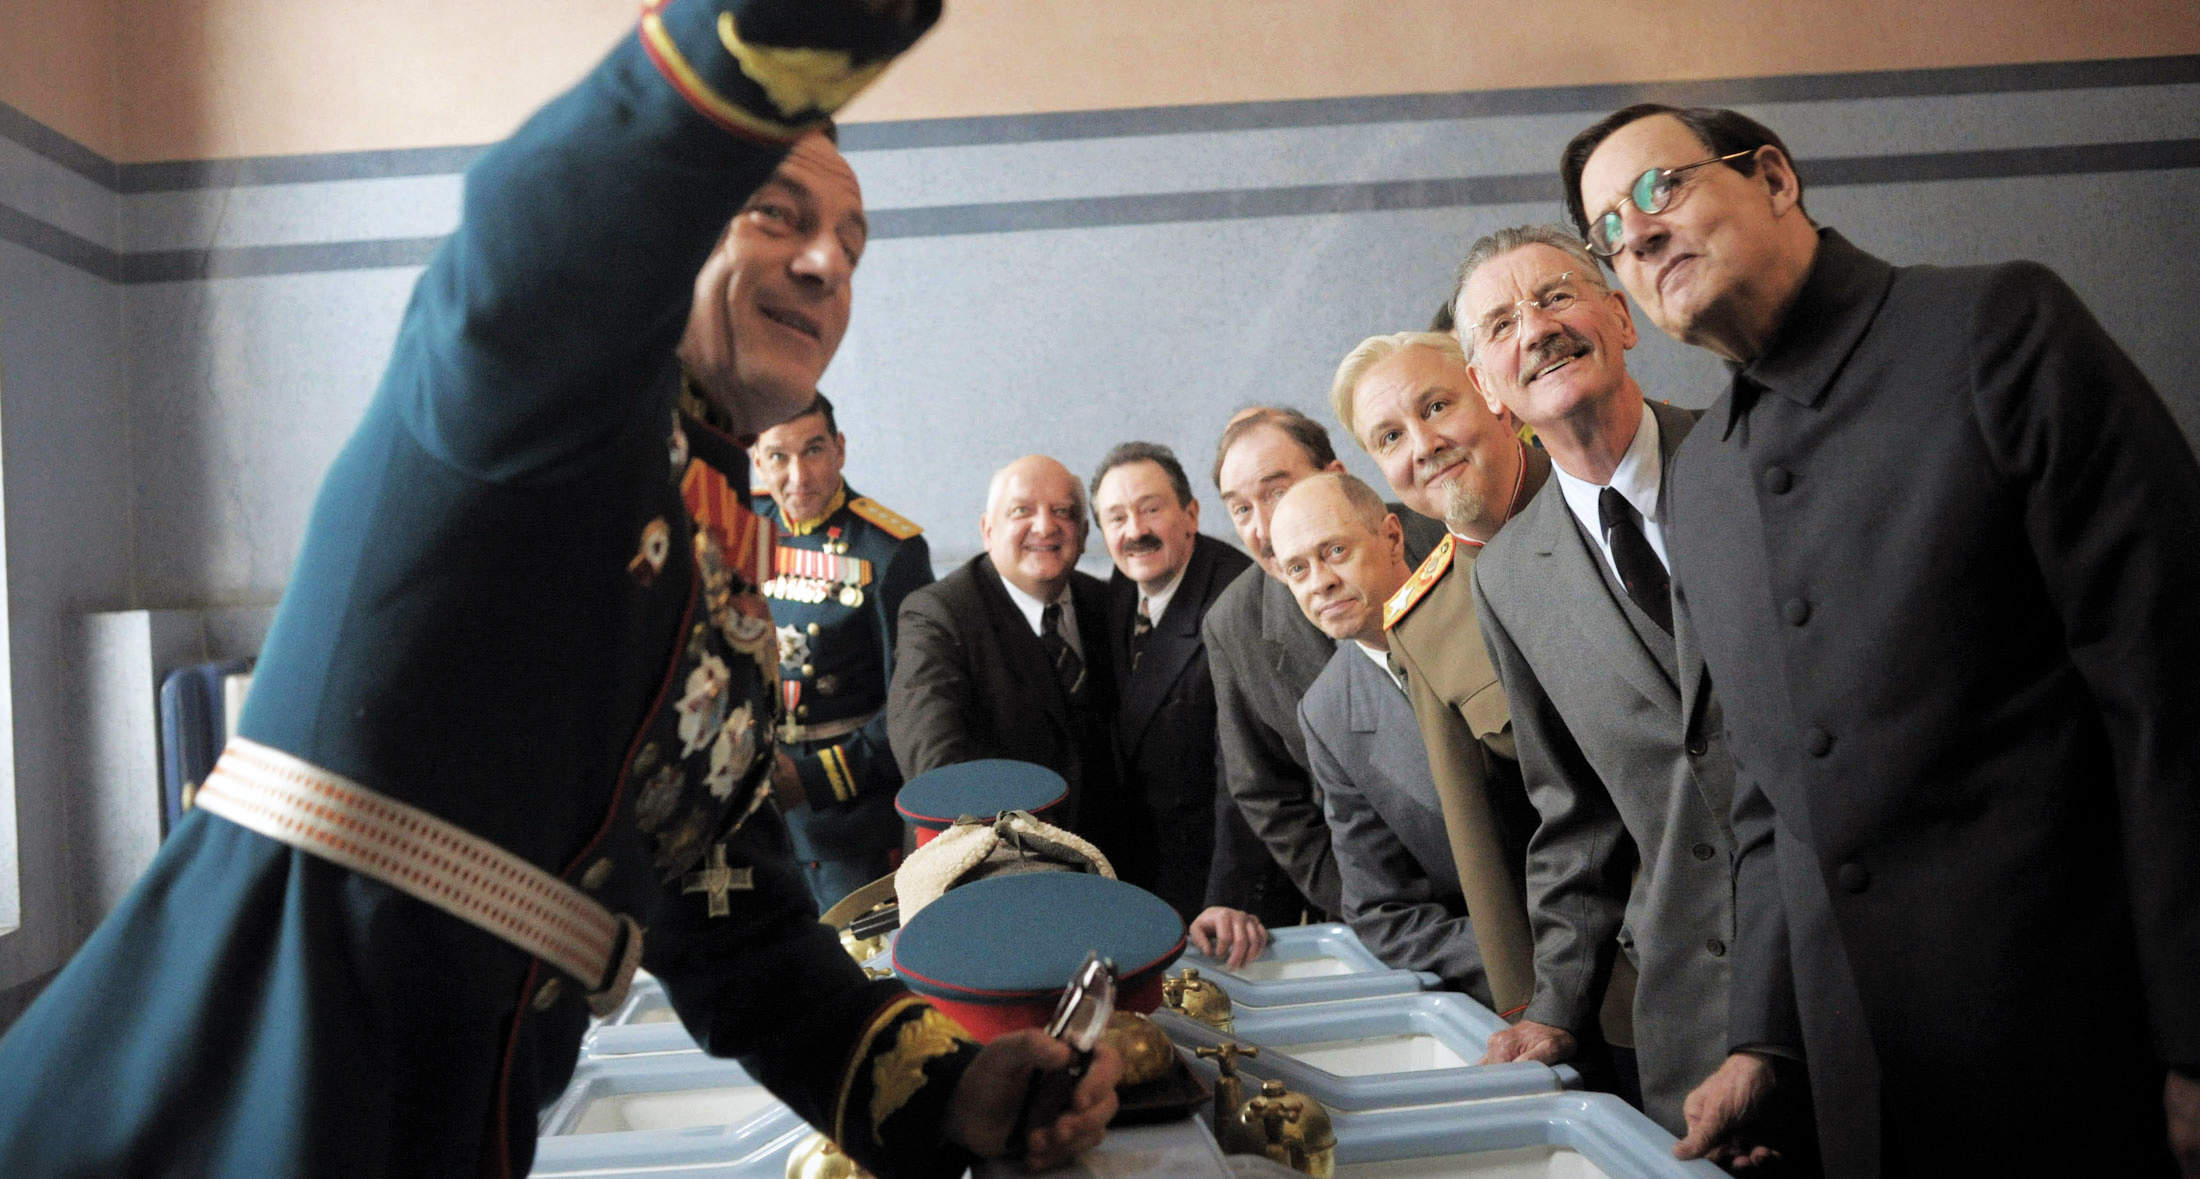 The Death of Stalin is The Thick of It in Communist Party clothing